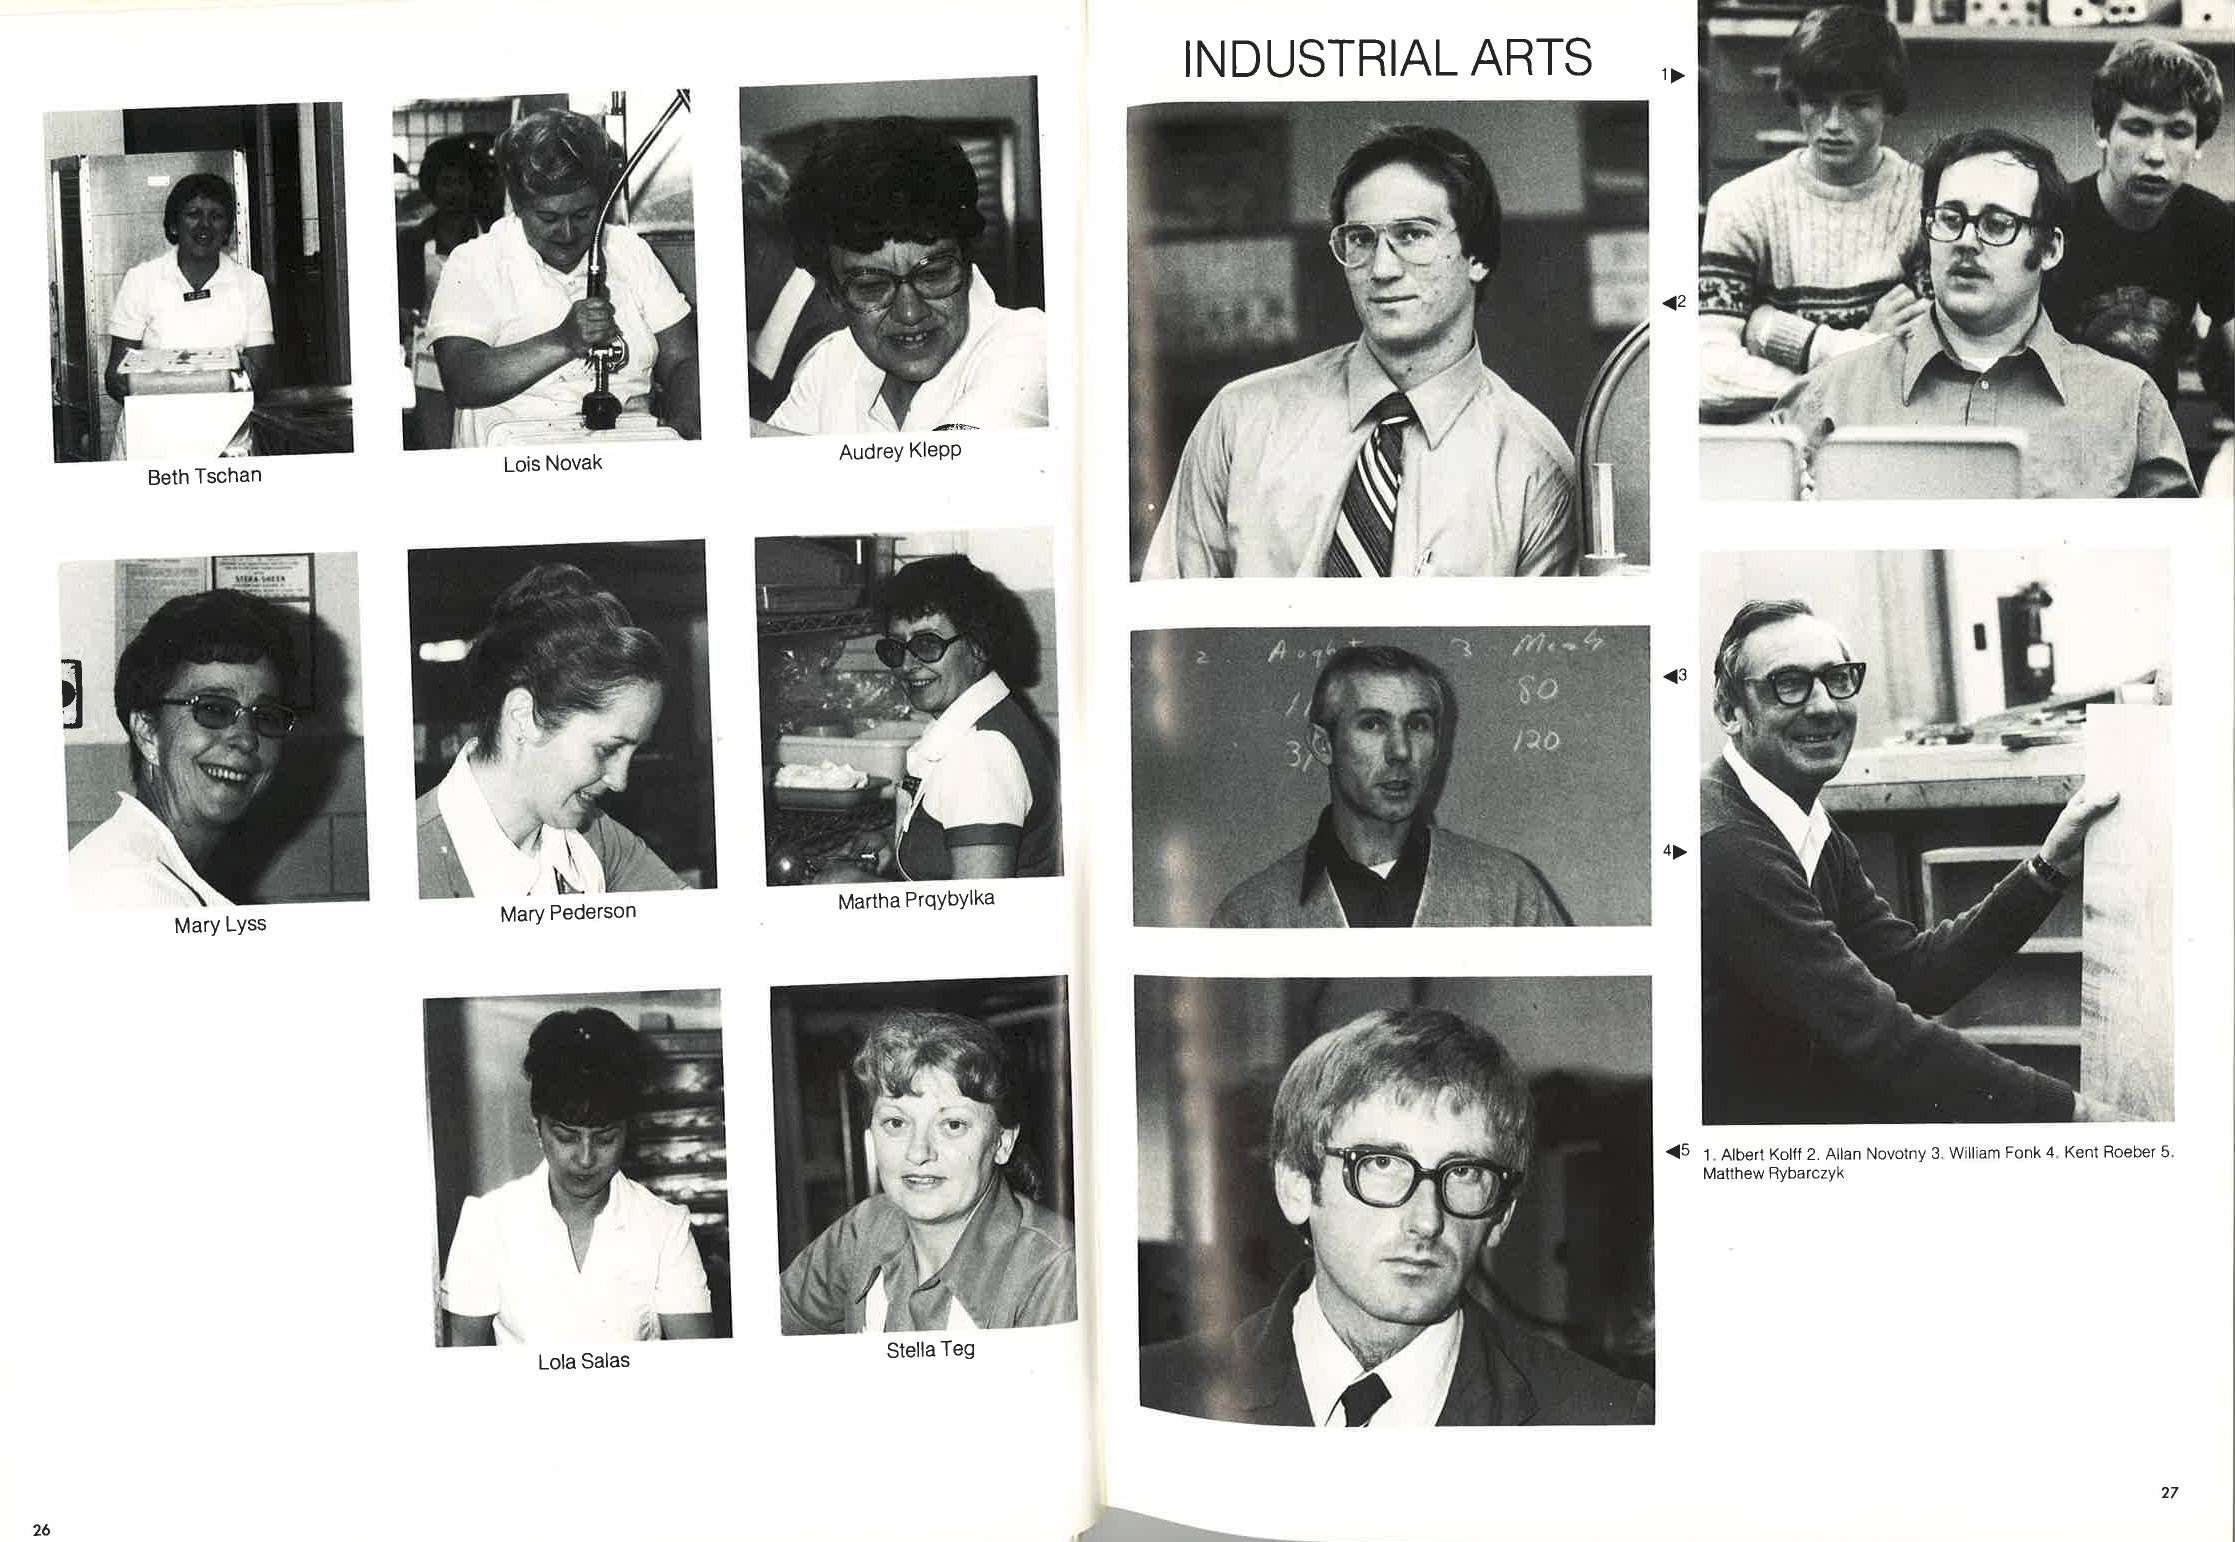 1980_Yearbook_26.jpg